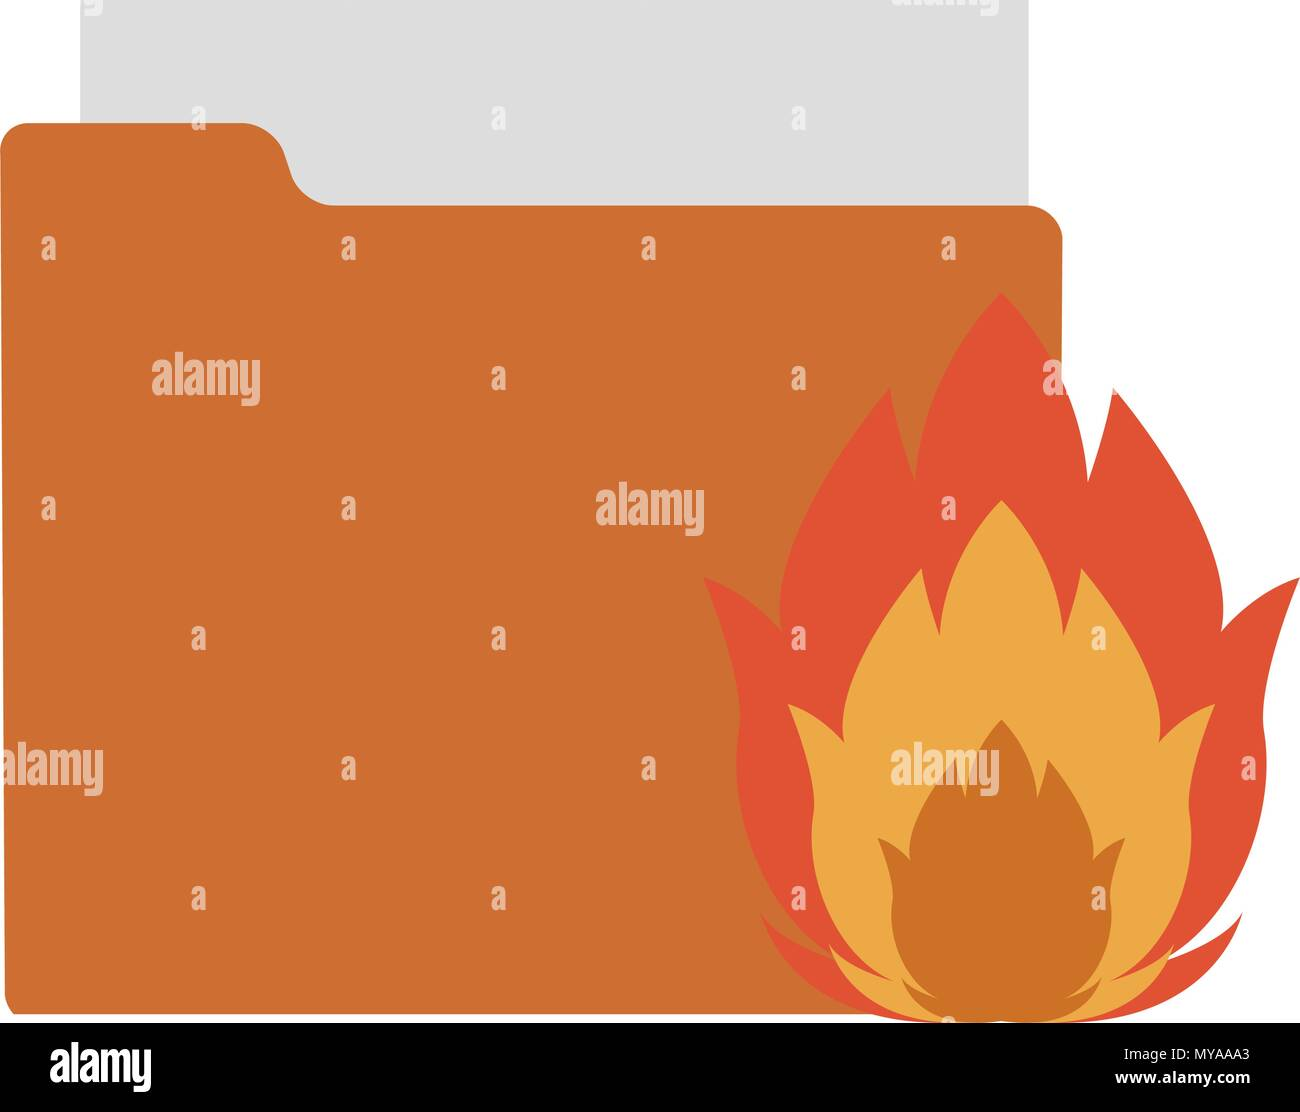 Folder with flamme - Stock Image